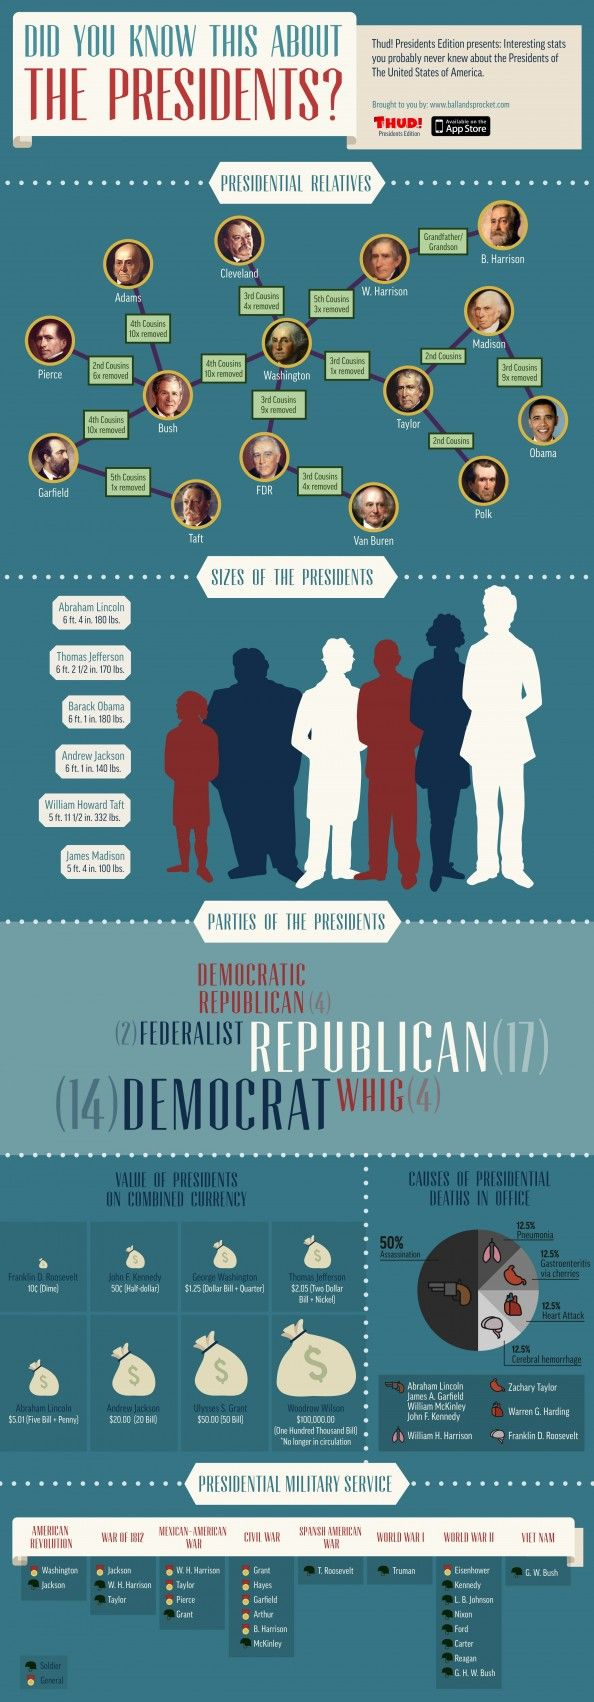 Did You Know This About The Presidents? Infographic